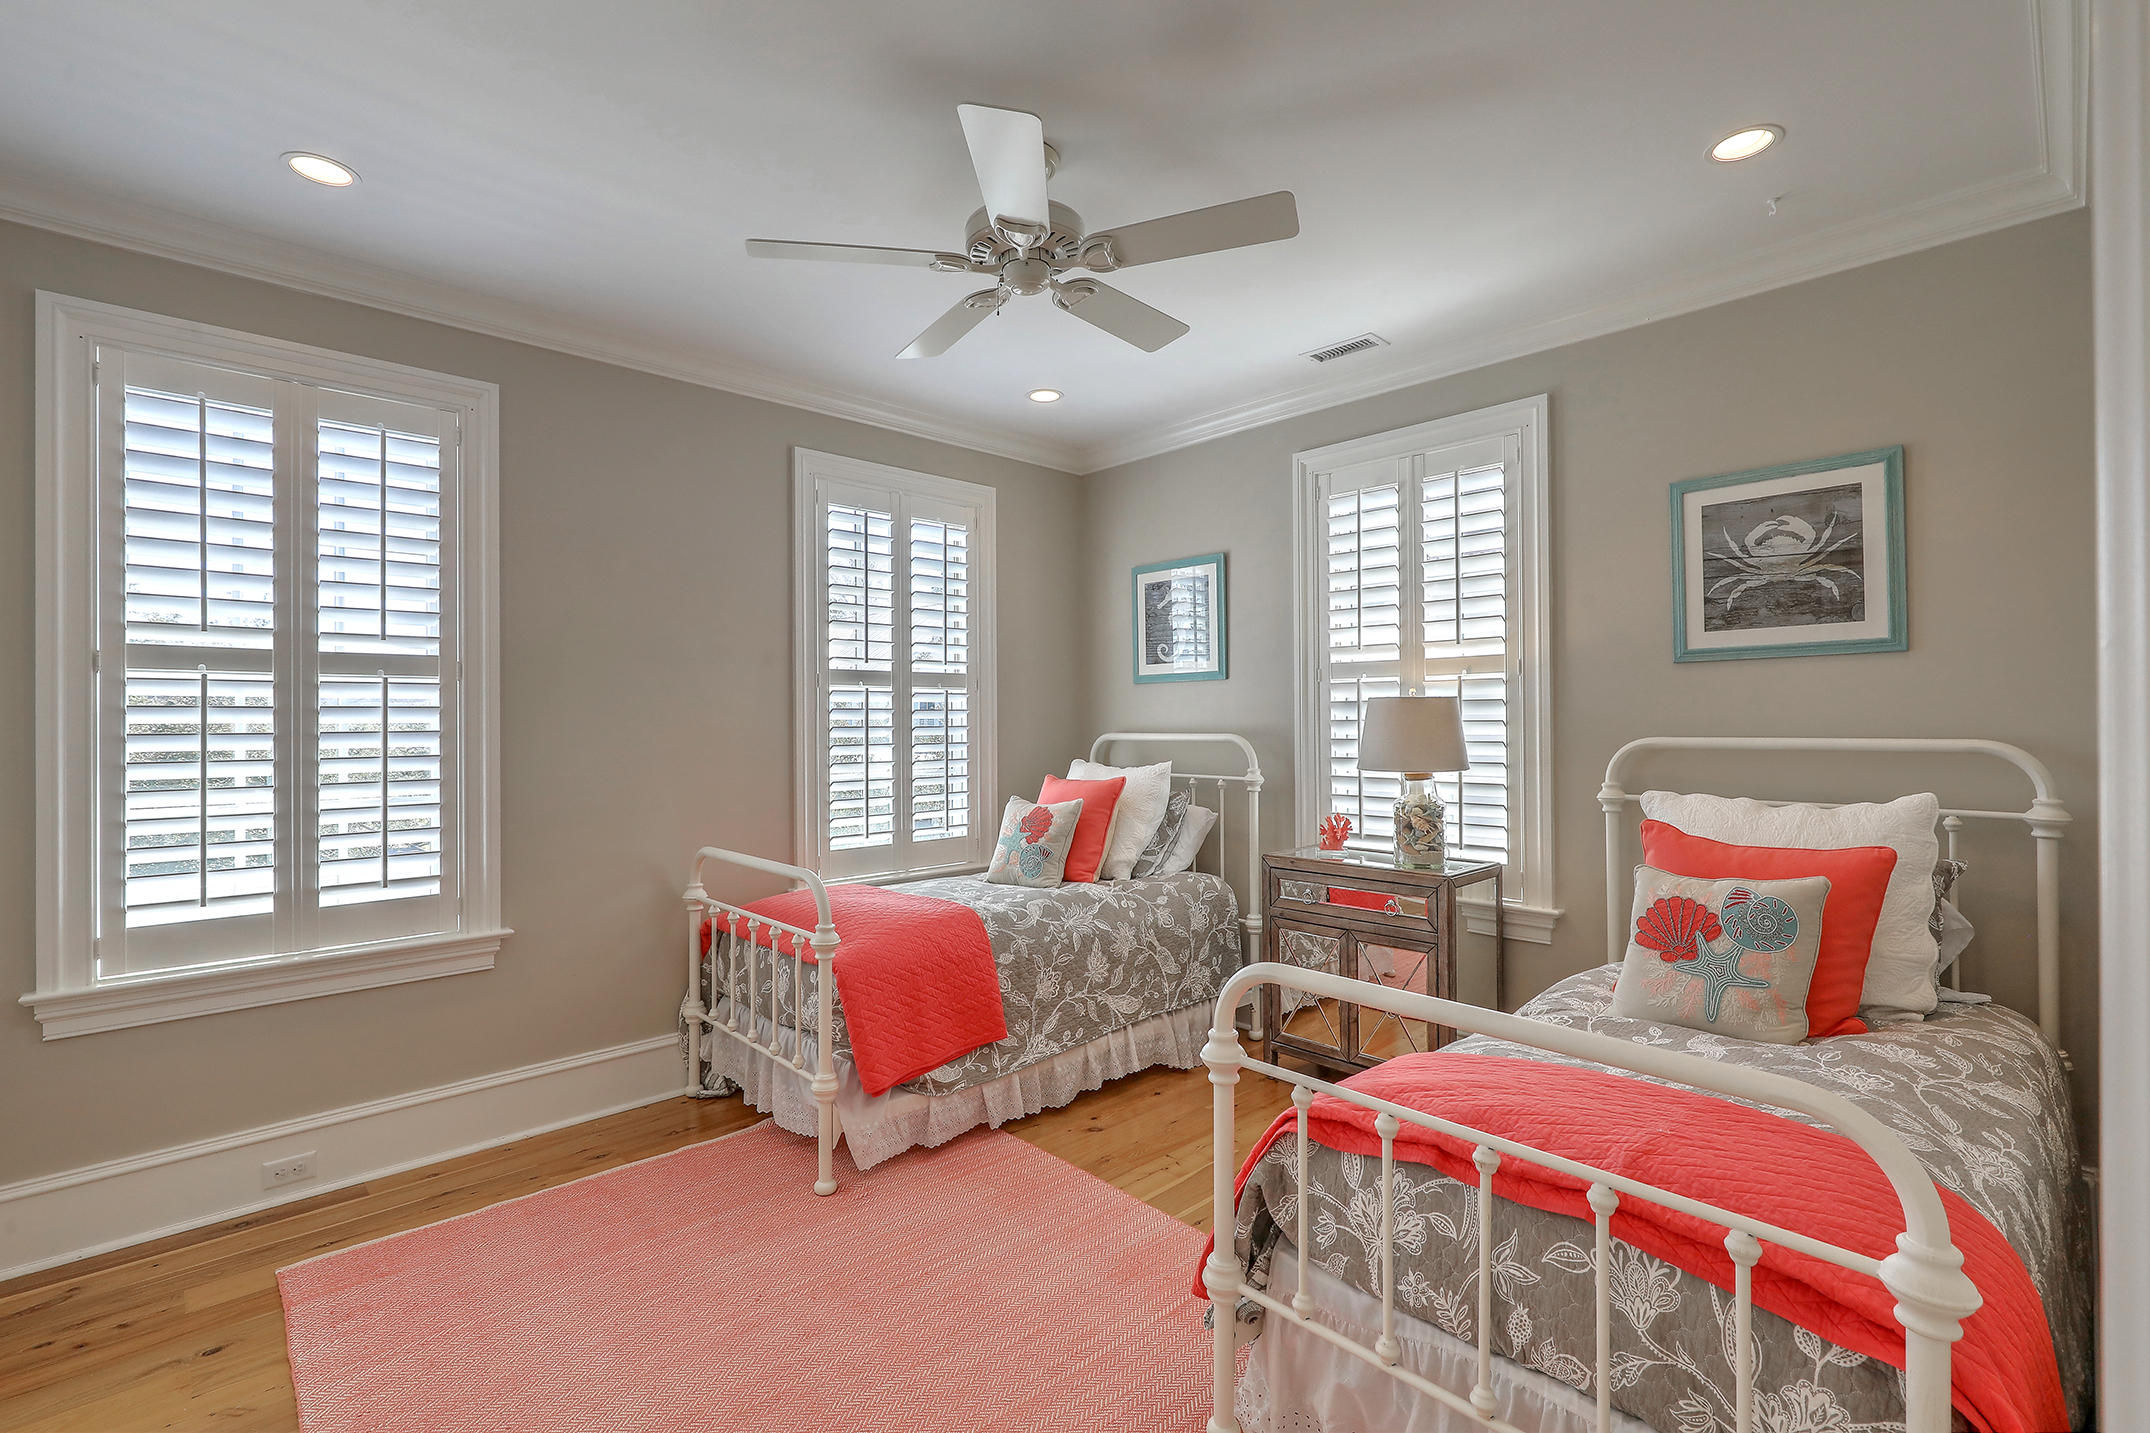 Belle Hall Homes For Sale - 716 Stucco, Mount Pleasant, SC - 15